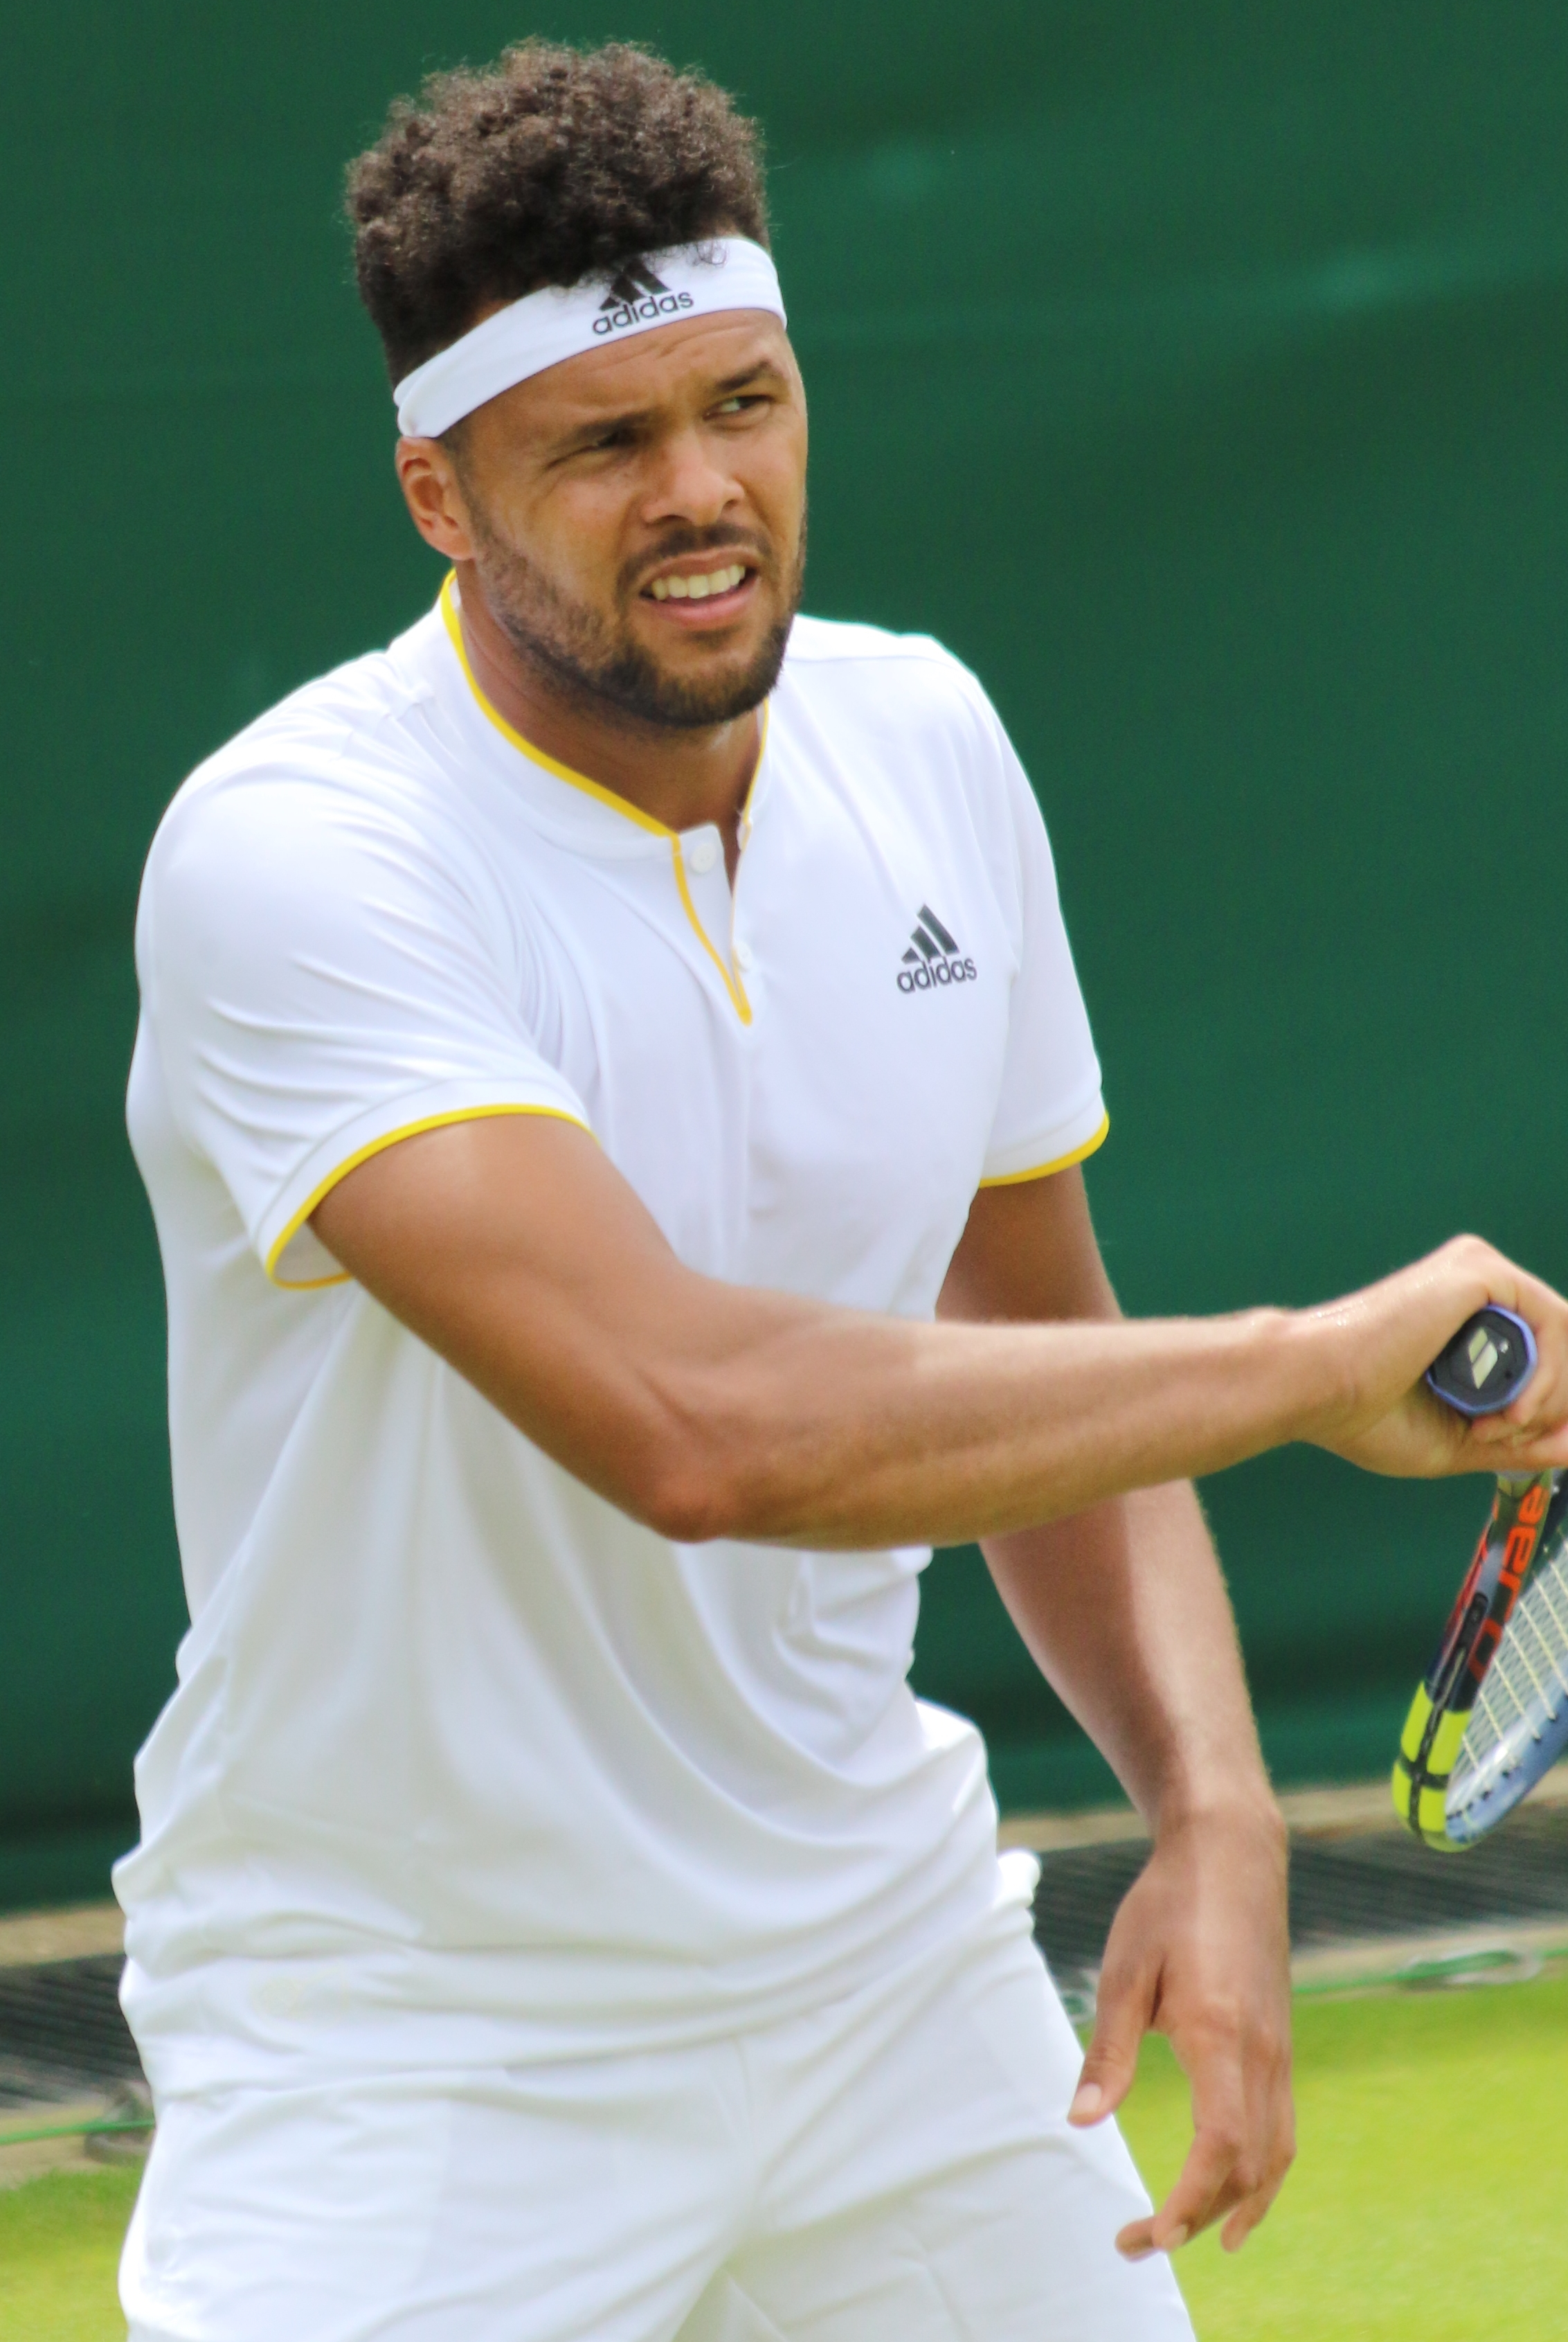 The 34-year old son of father Didier Tsonga and mother Évelyne Tsonga Jo-Wilfried Tsonga in 2020 photo. Jo-Wilfried Tsonga earned a  million dollar salary - leaving the net worth at 10 million in 2020